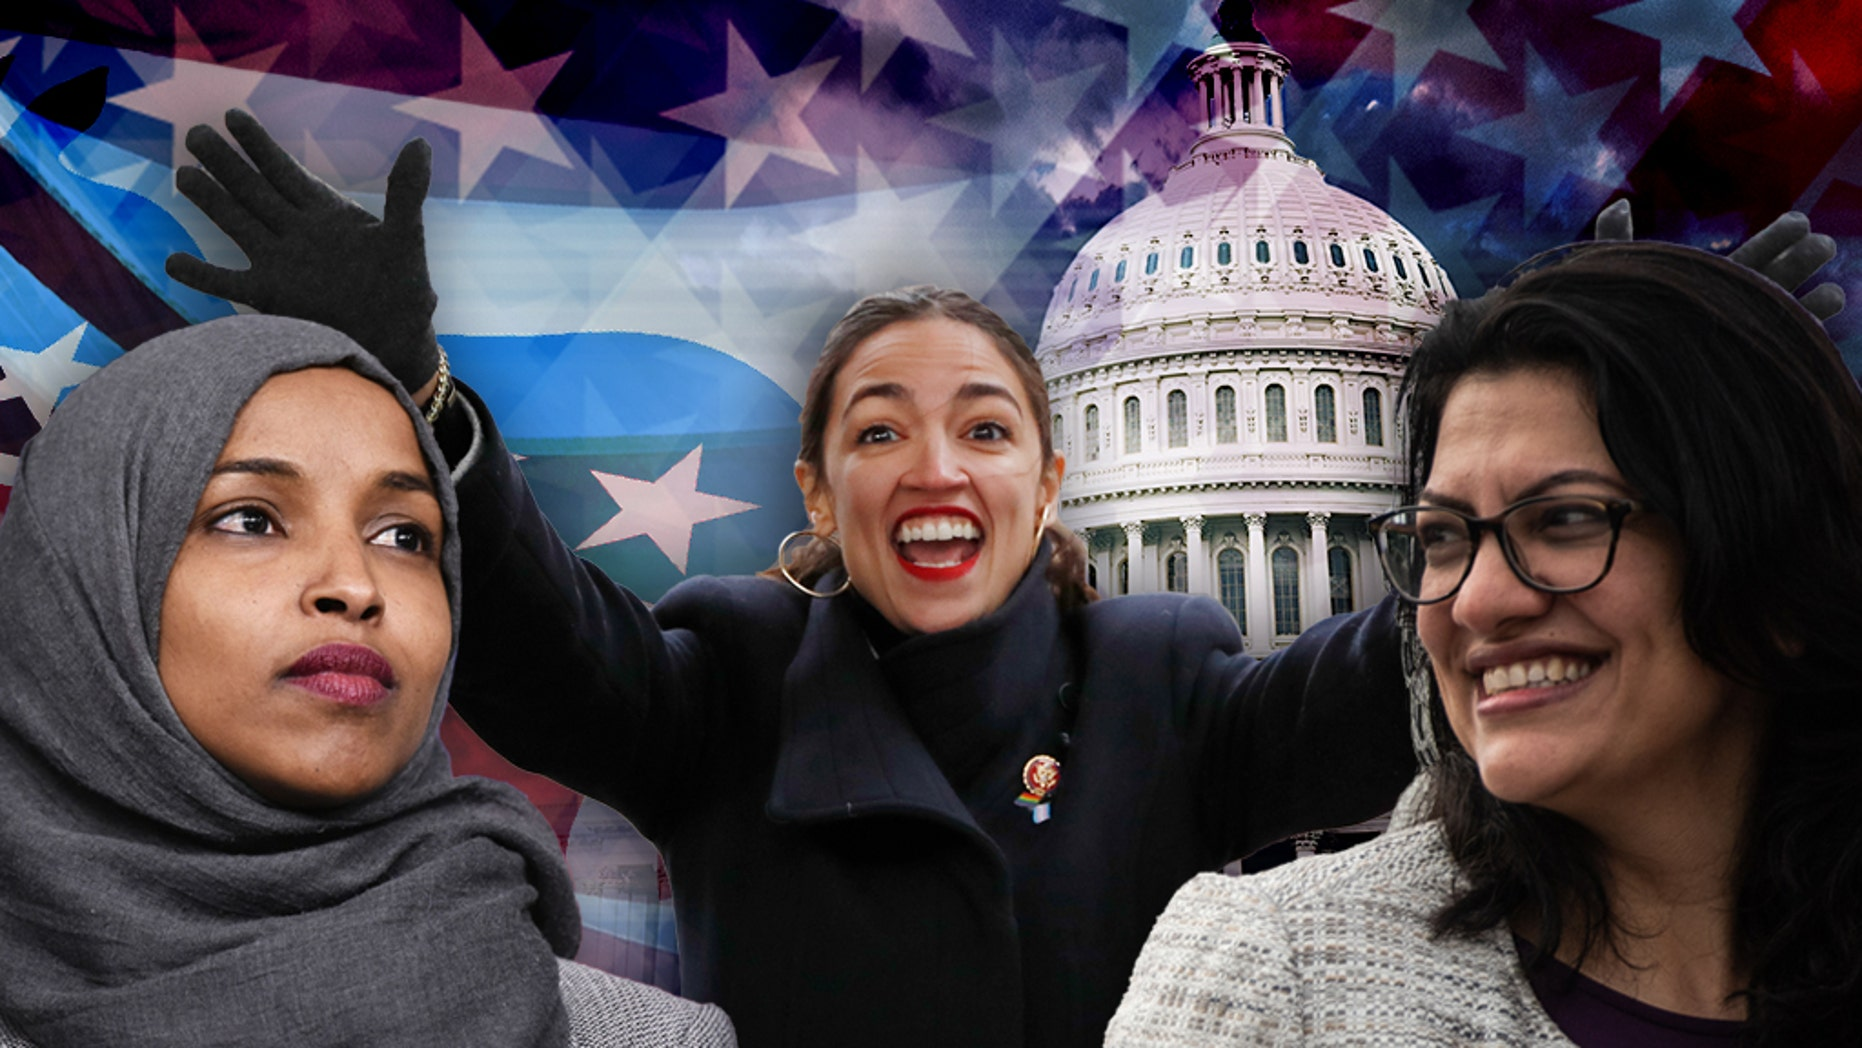 Three new lawmakers causing a stir on Capitol Hill: From the left are the US representatives Ilhan Omar, Alexandria Ocasio-Cortez and Rashida Tlaib.